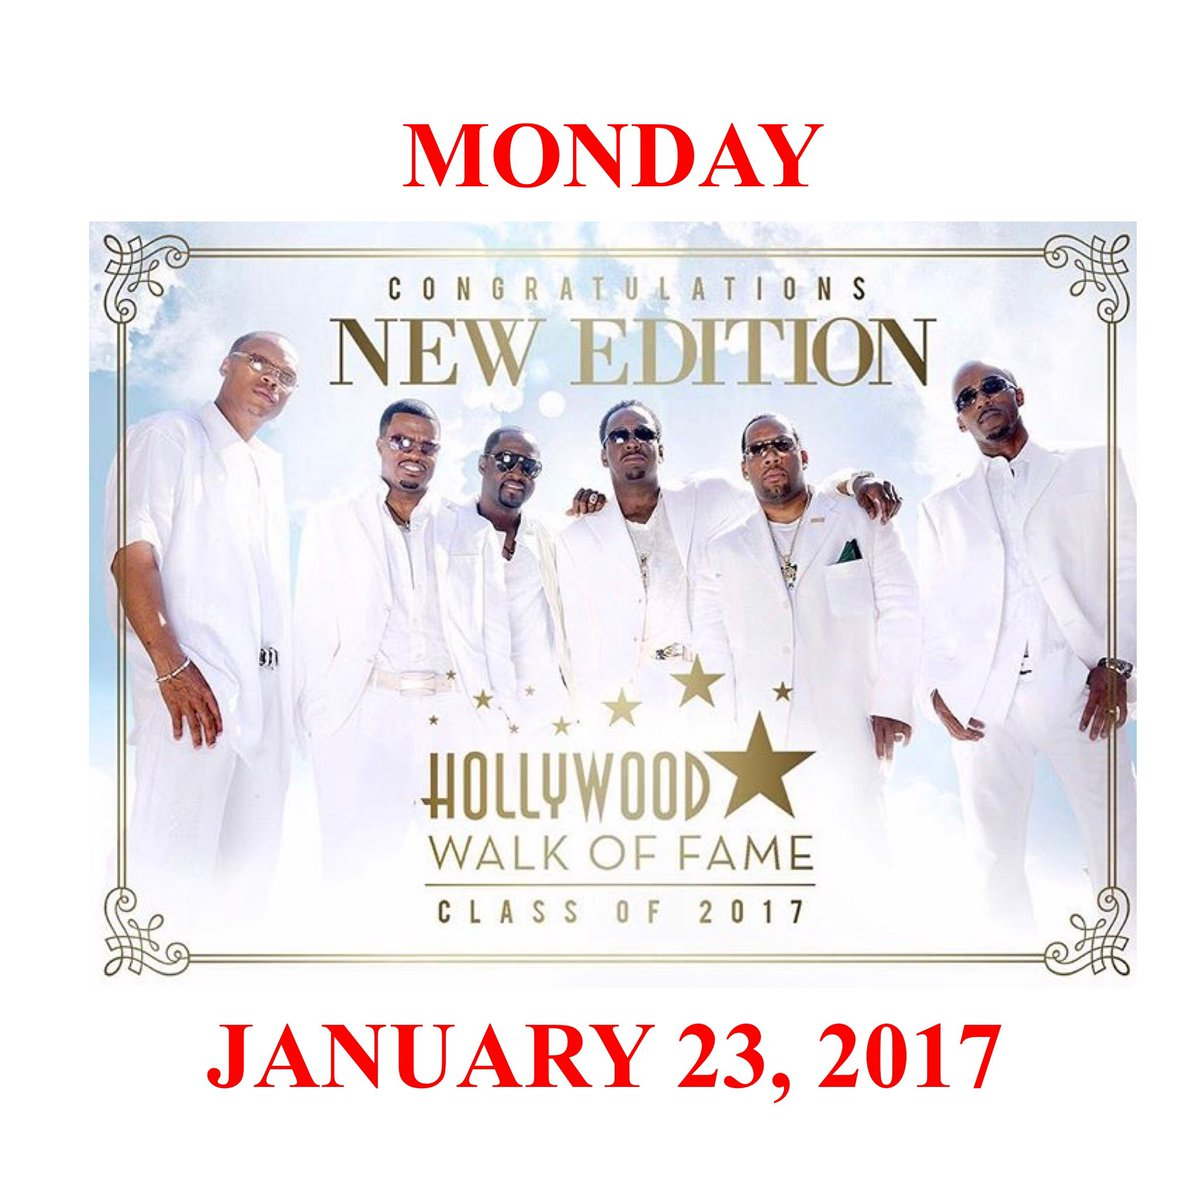 """THE DATE IS NOW OFFICIAL""  New Edition - Hollywood Walk of Fame Star Ceremony https://t.co/pMxcrqdvn6 https://t.co/wpnPyFk1Xh"